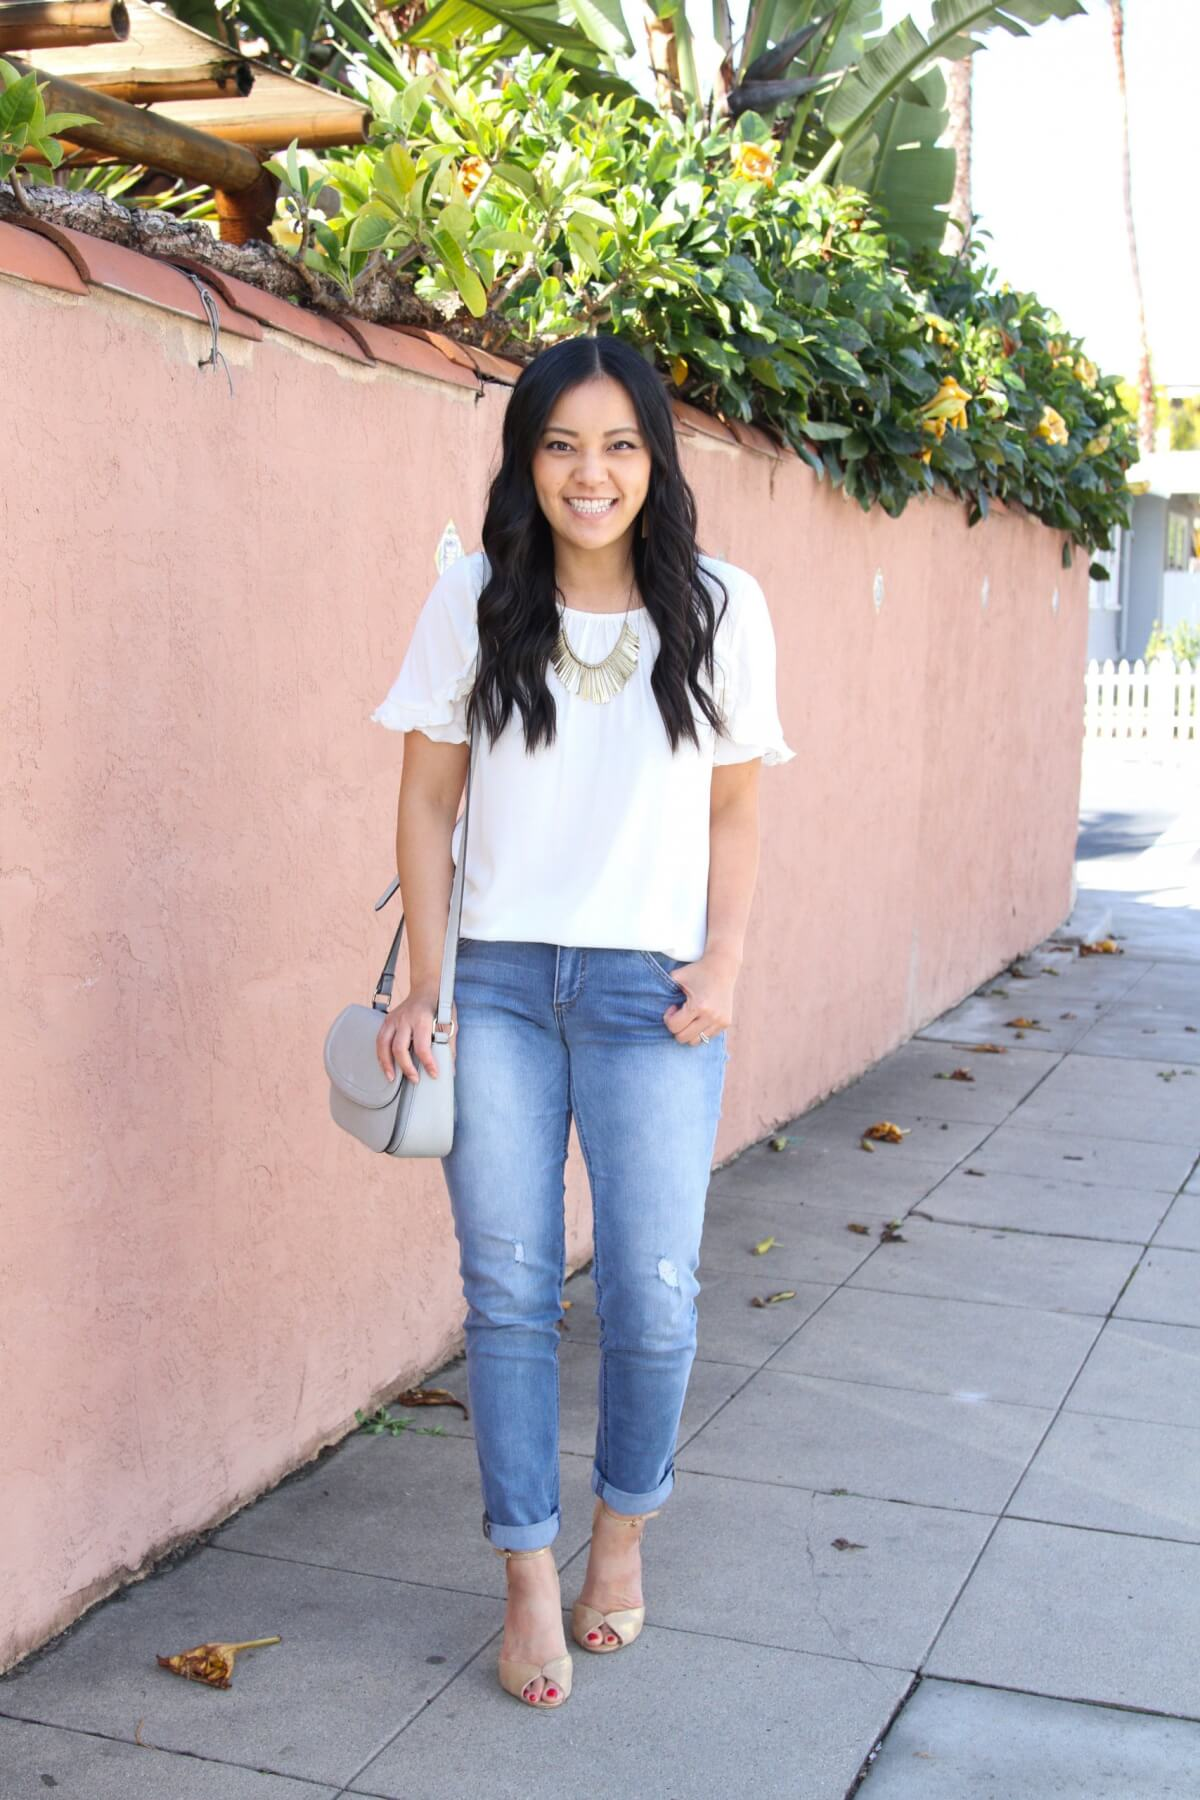 Classic Outfit: white ruffle sleeve top + distressed jeans + metallic heels + metallic statement necklace + gray bag